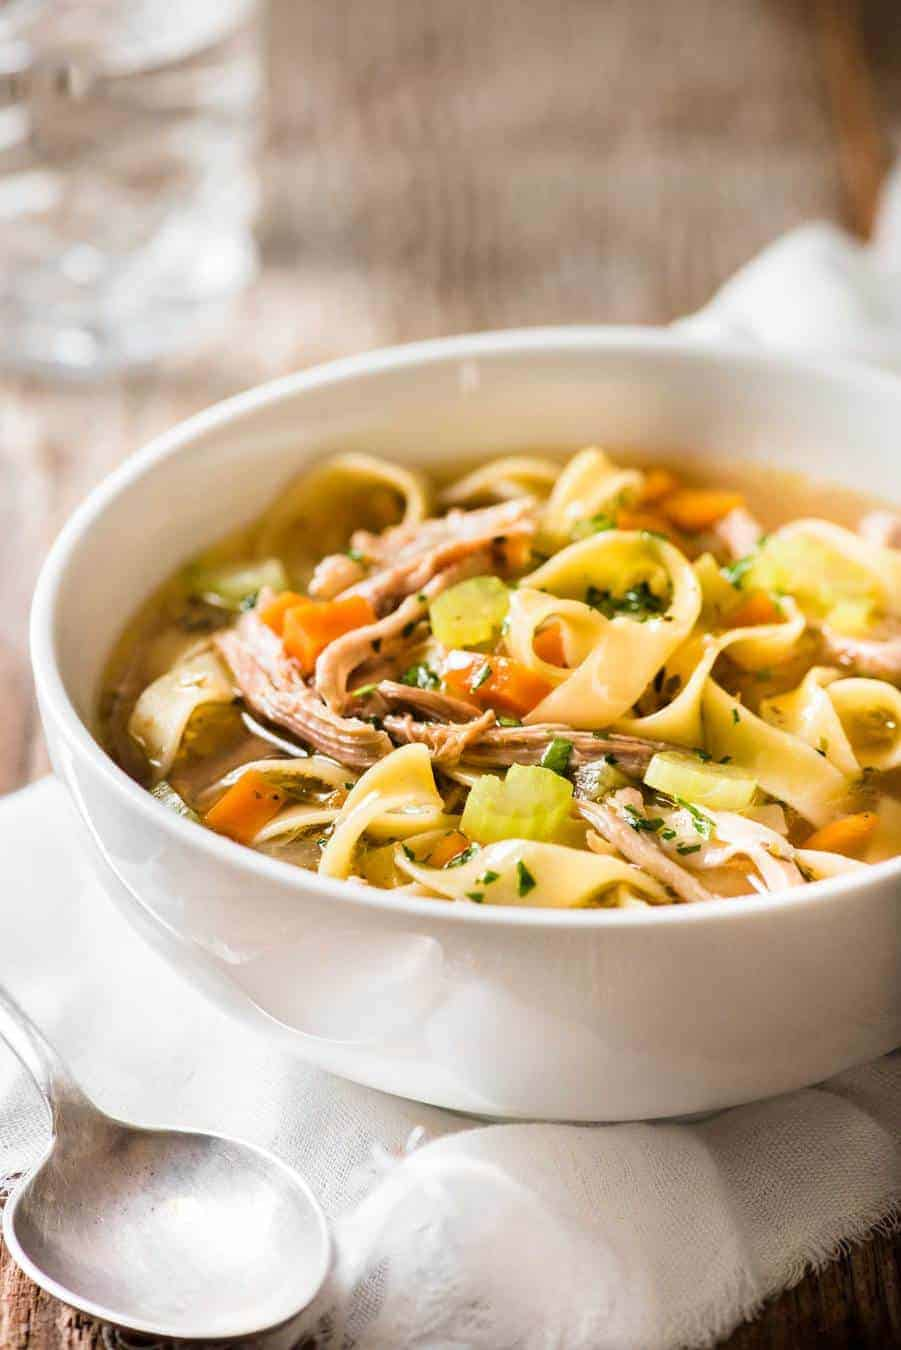 Chicken Vegetable Noodle Soup in a white bowl, ready to be eaten.